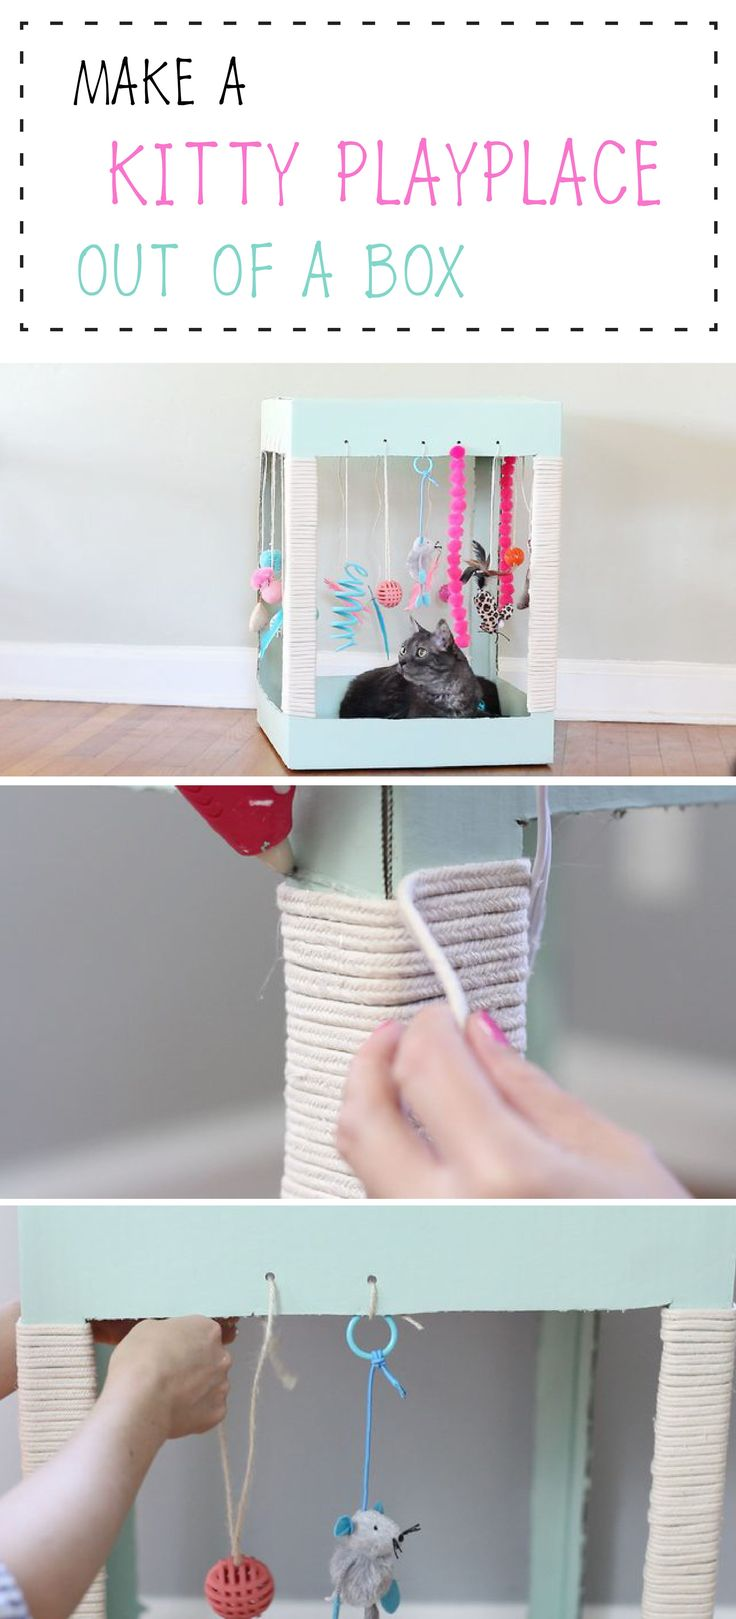 DIY kitty playplace made out of a cardboard box! - Lugar de juegos casero para gato diy.